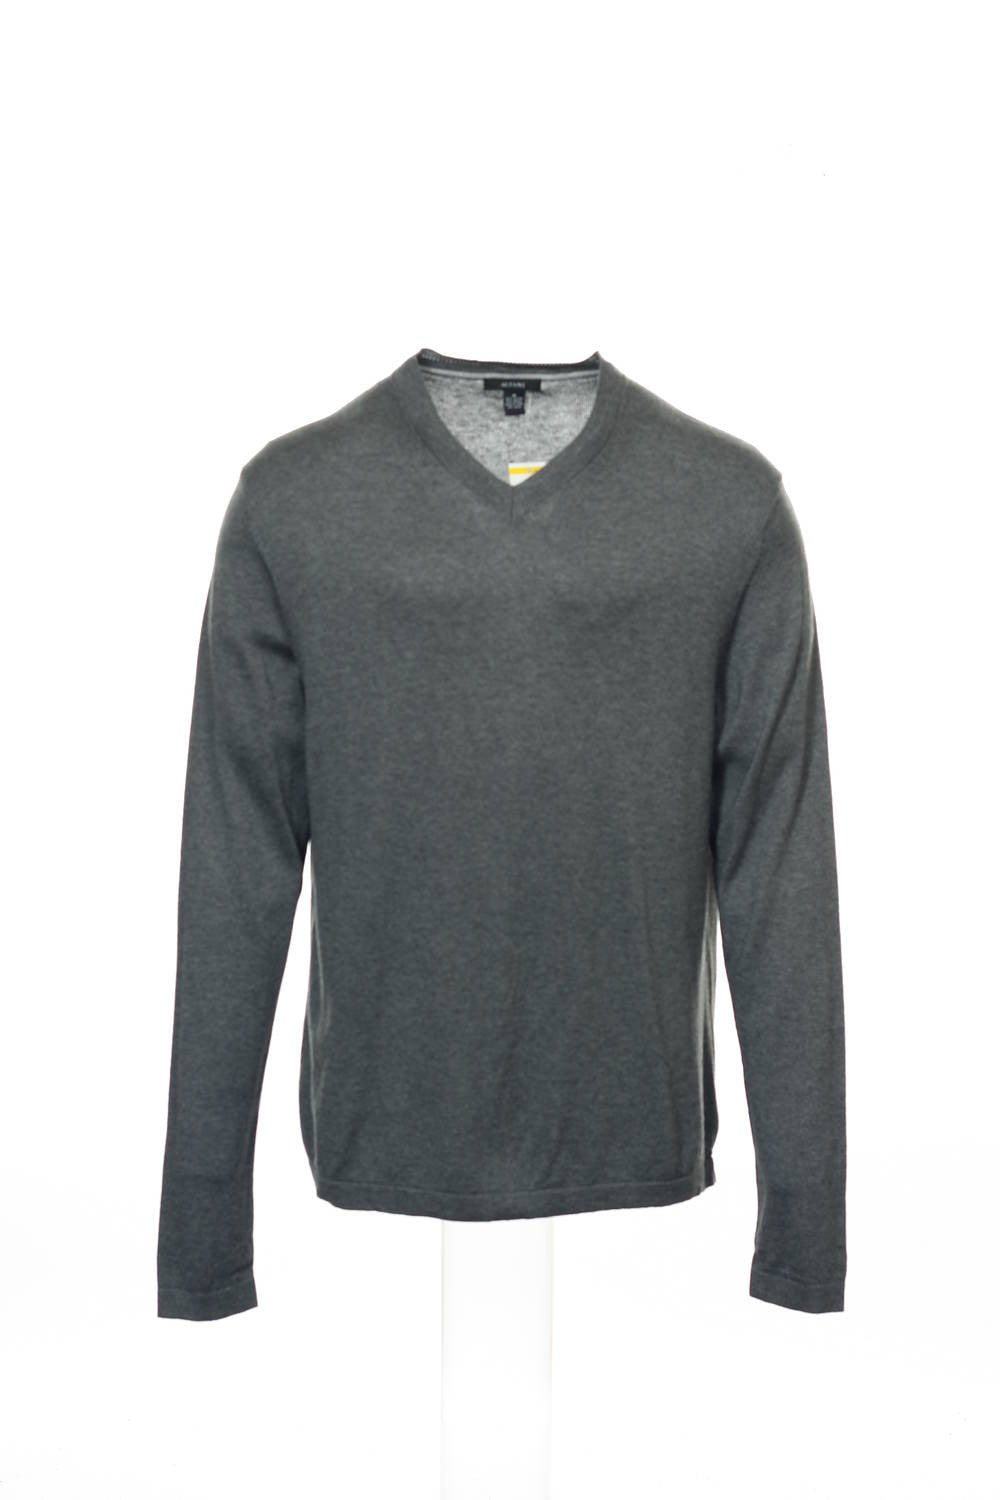 Alfani Mens Gray Heather V-Neck Sweater